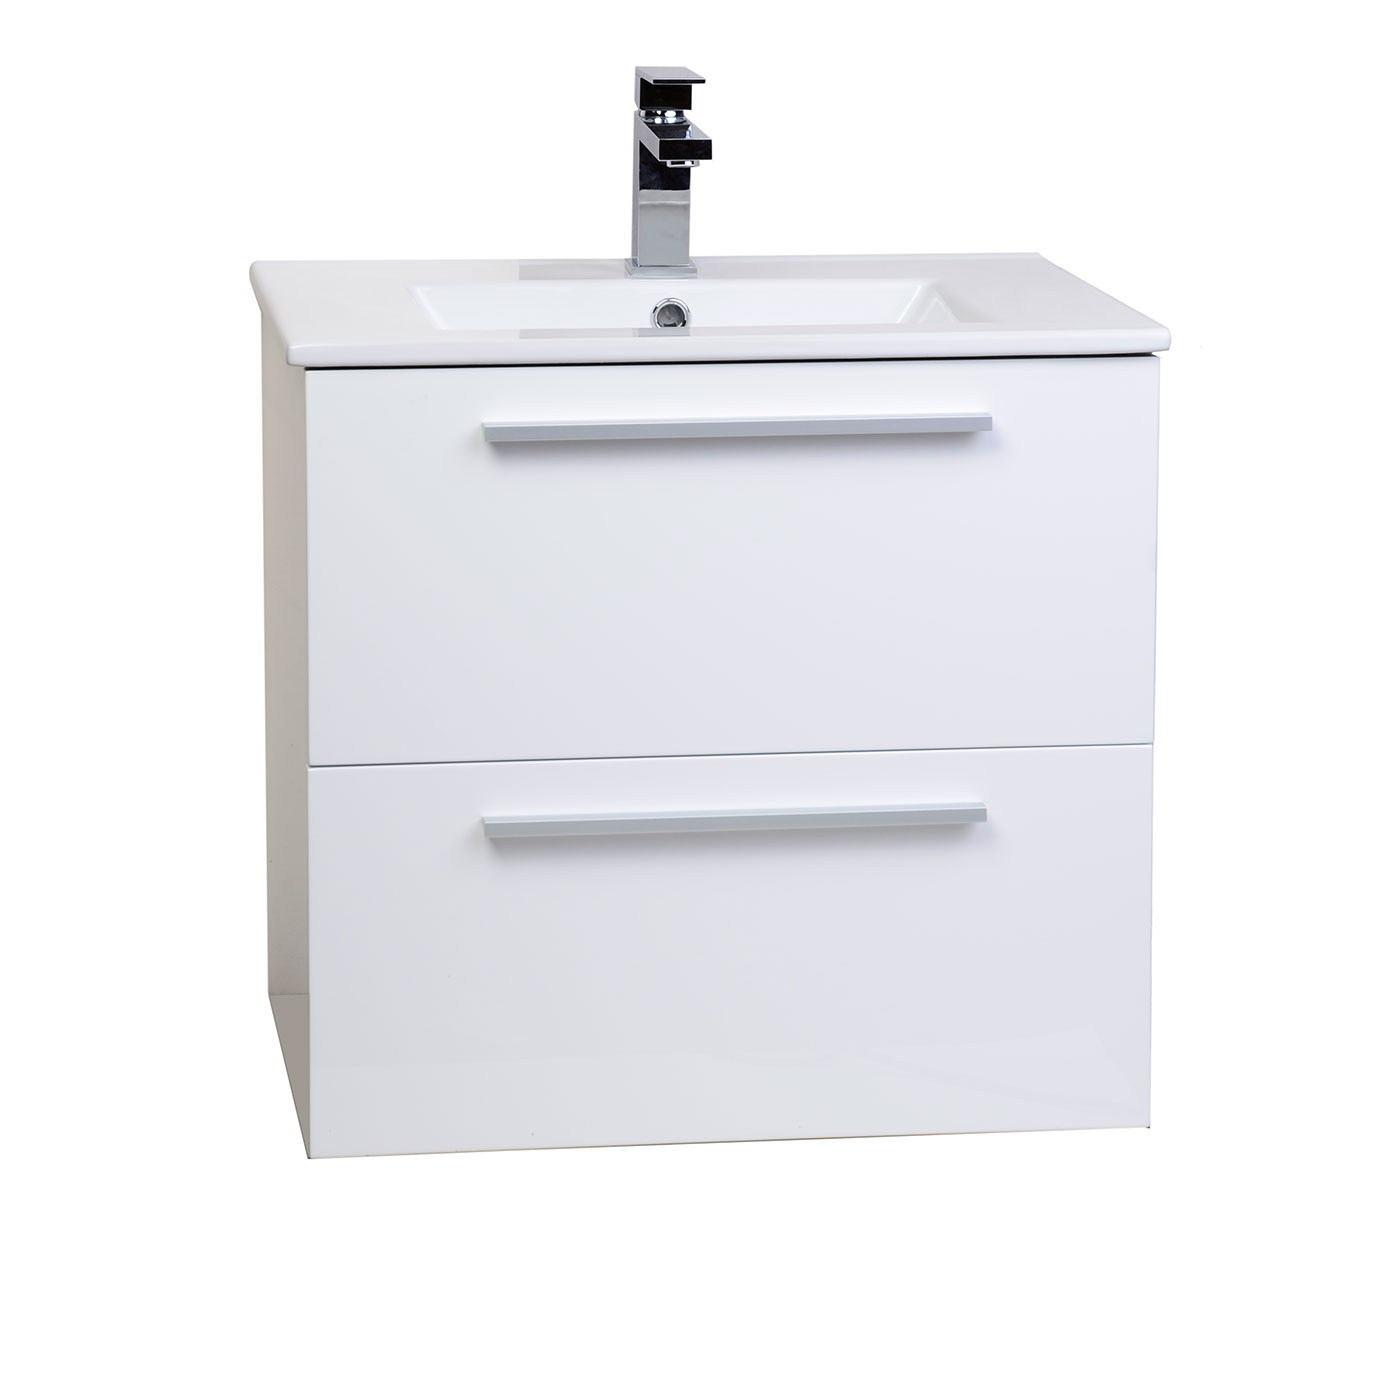 reviews abbey set with double drawers kbc collection improvement bathroom drawer pdx vanity home kitchen bath wayfair